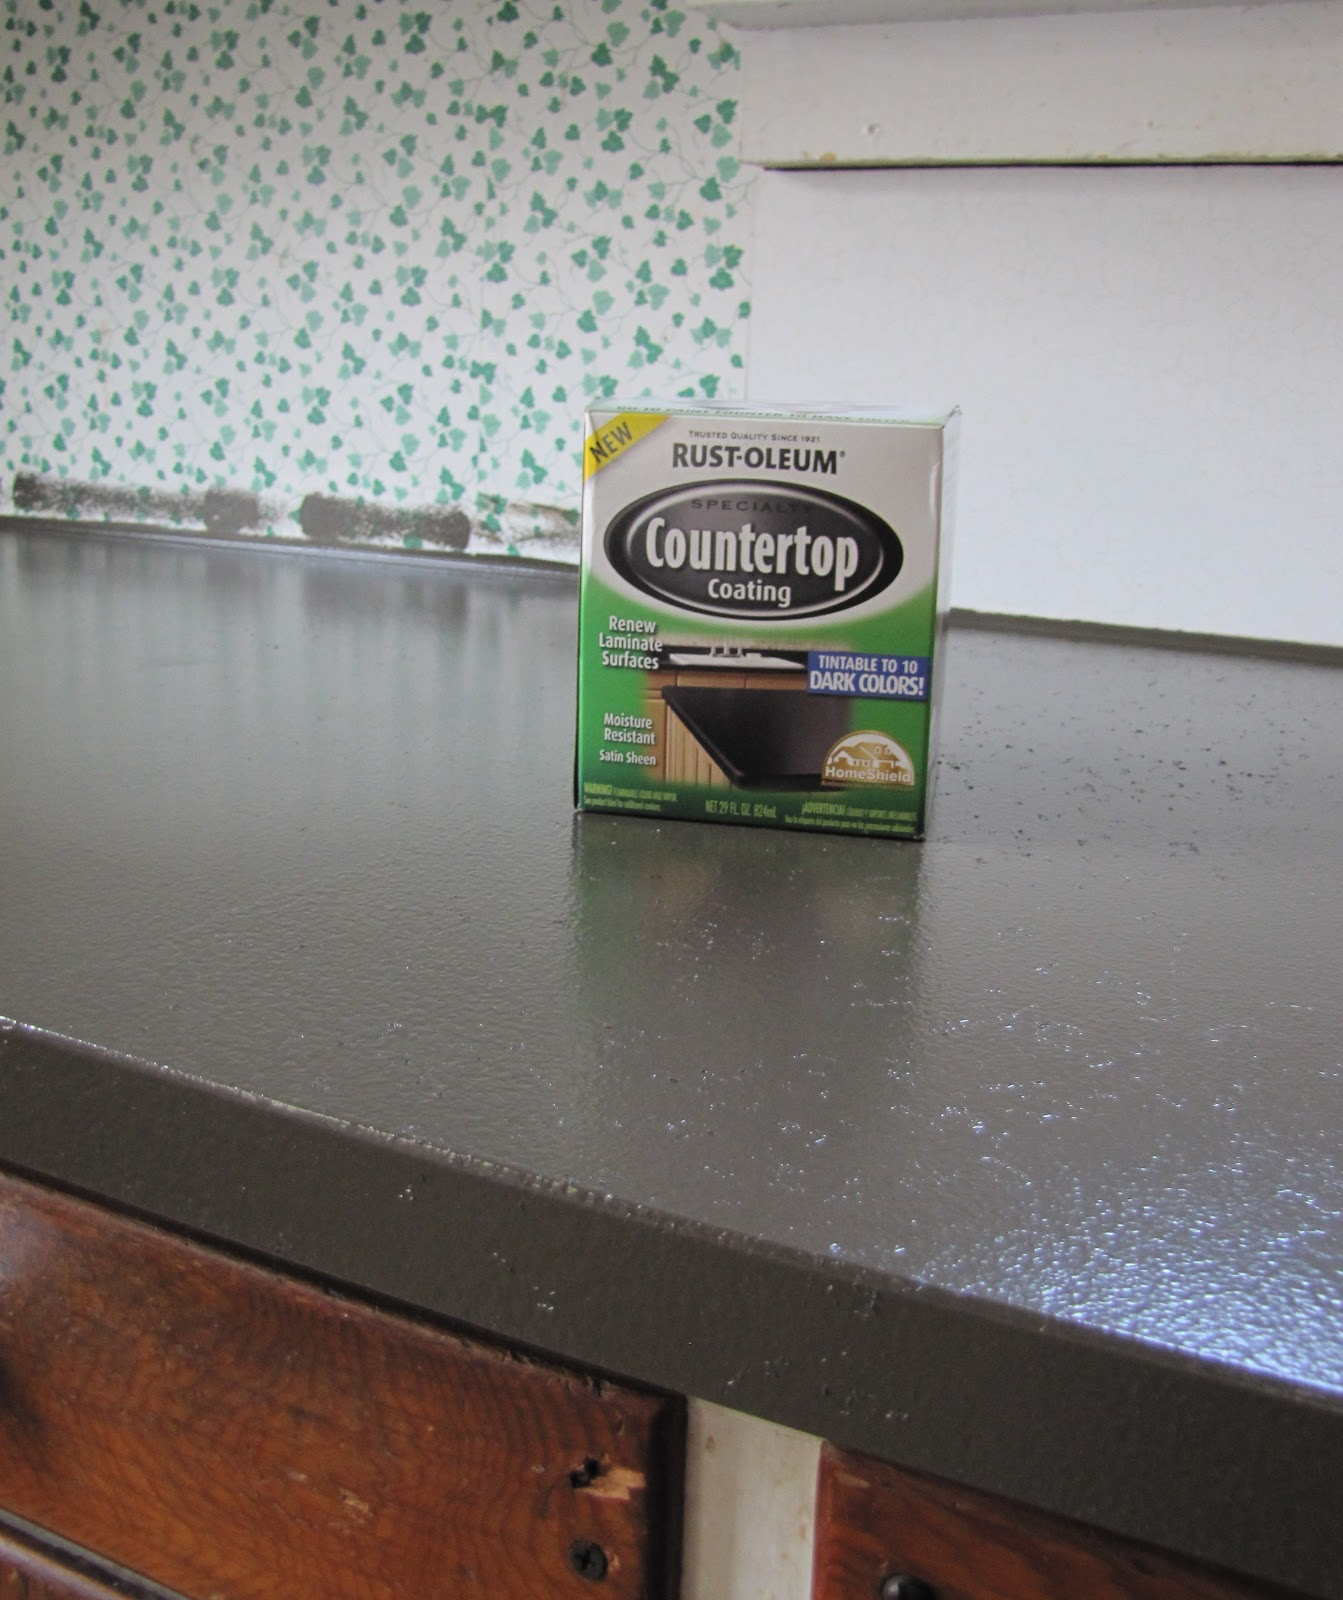 Rustoleum Countertop Paint White : Rust-Oleums Countertop Coating- purchased for just over $20 bucks ...